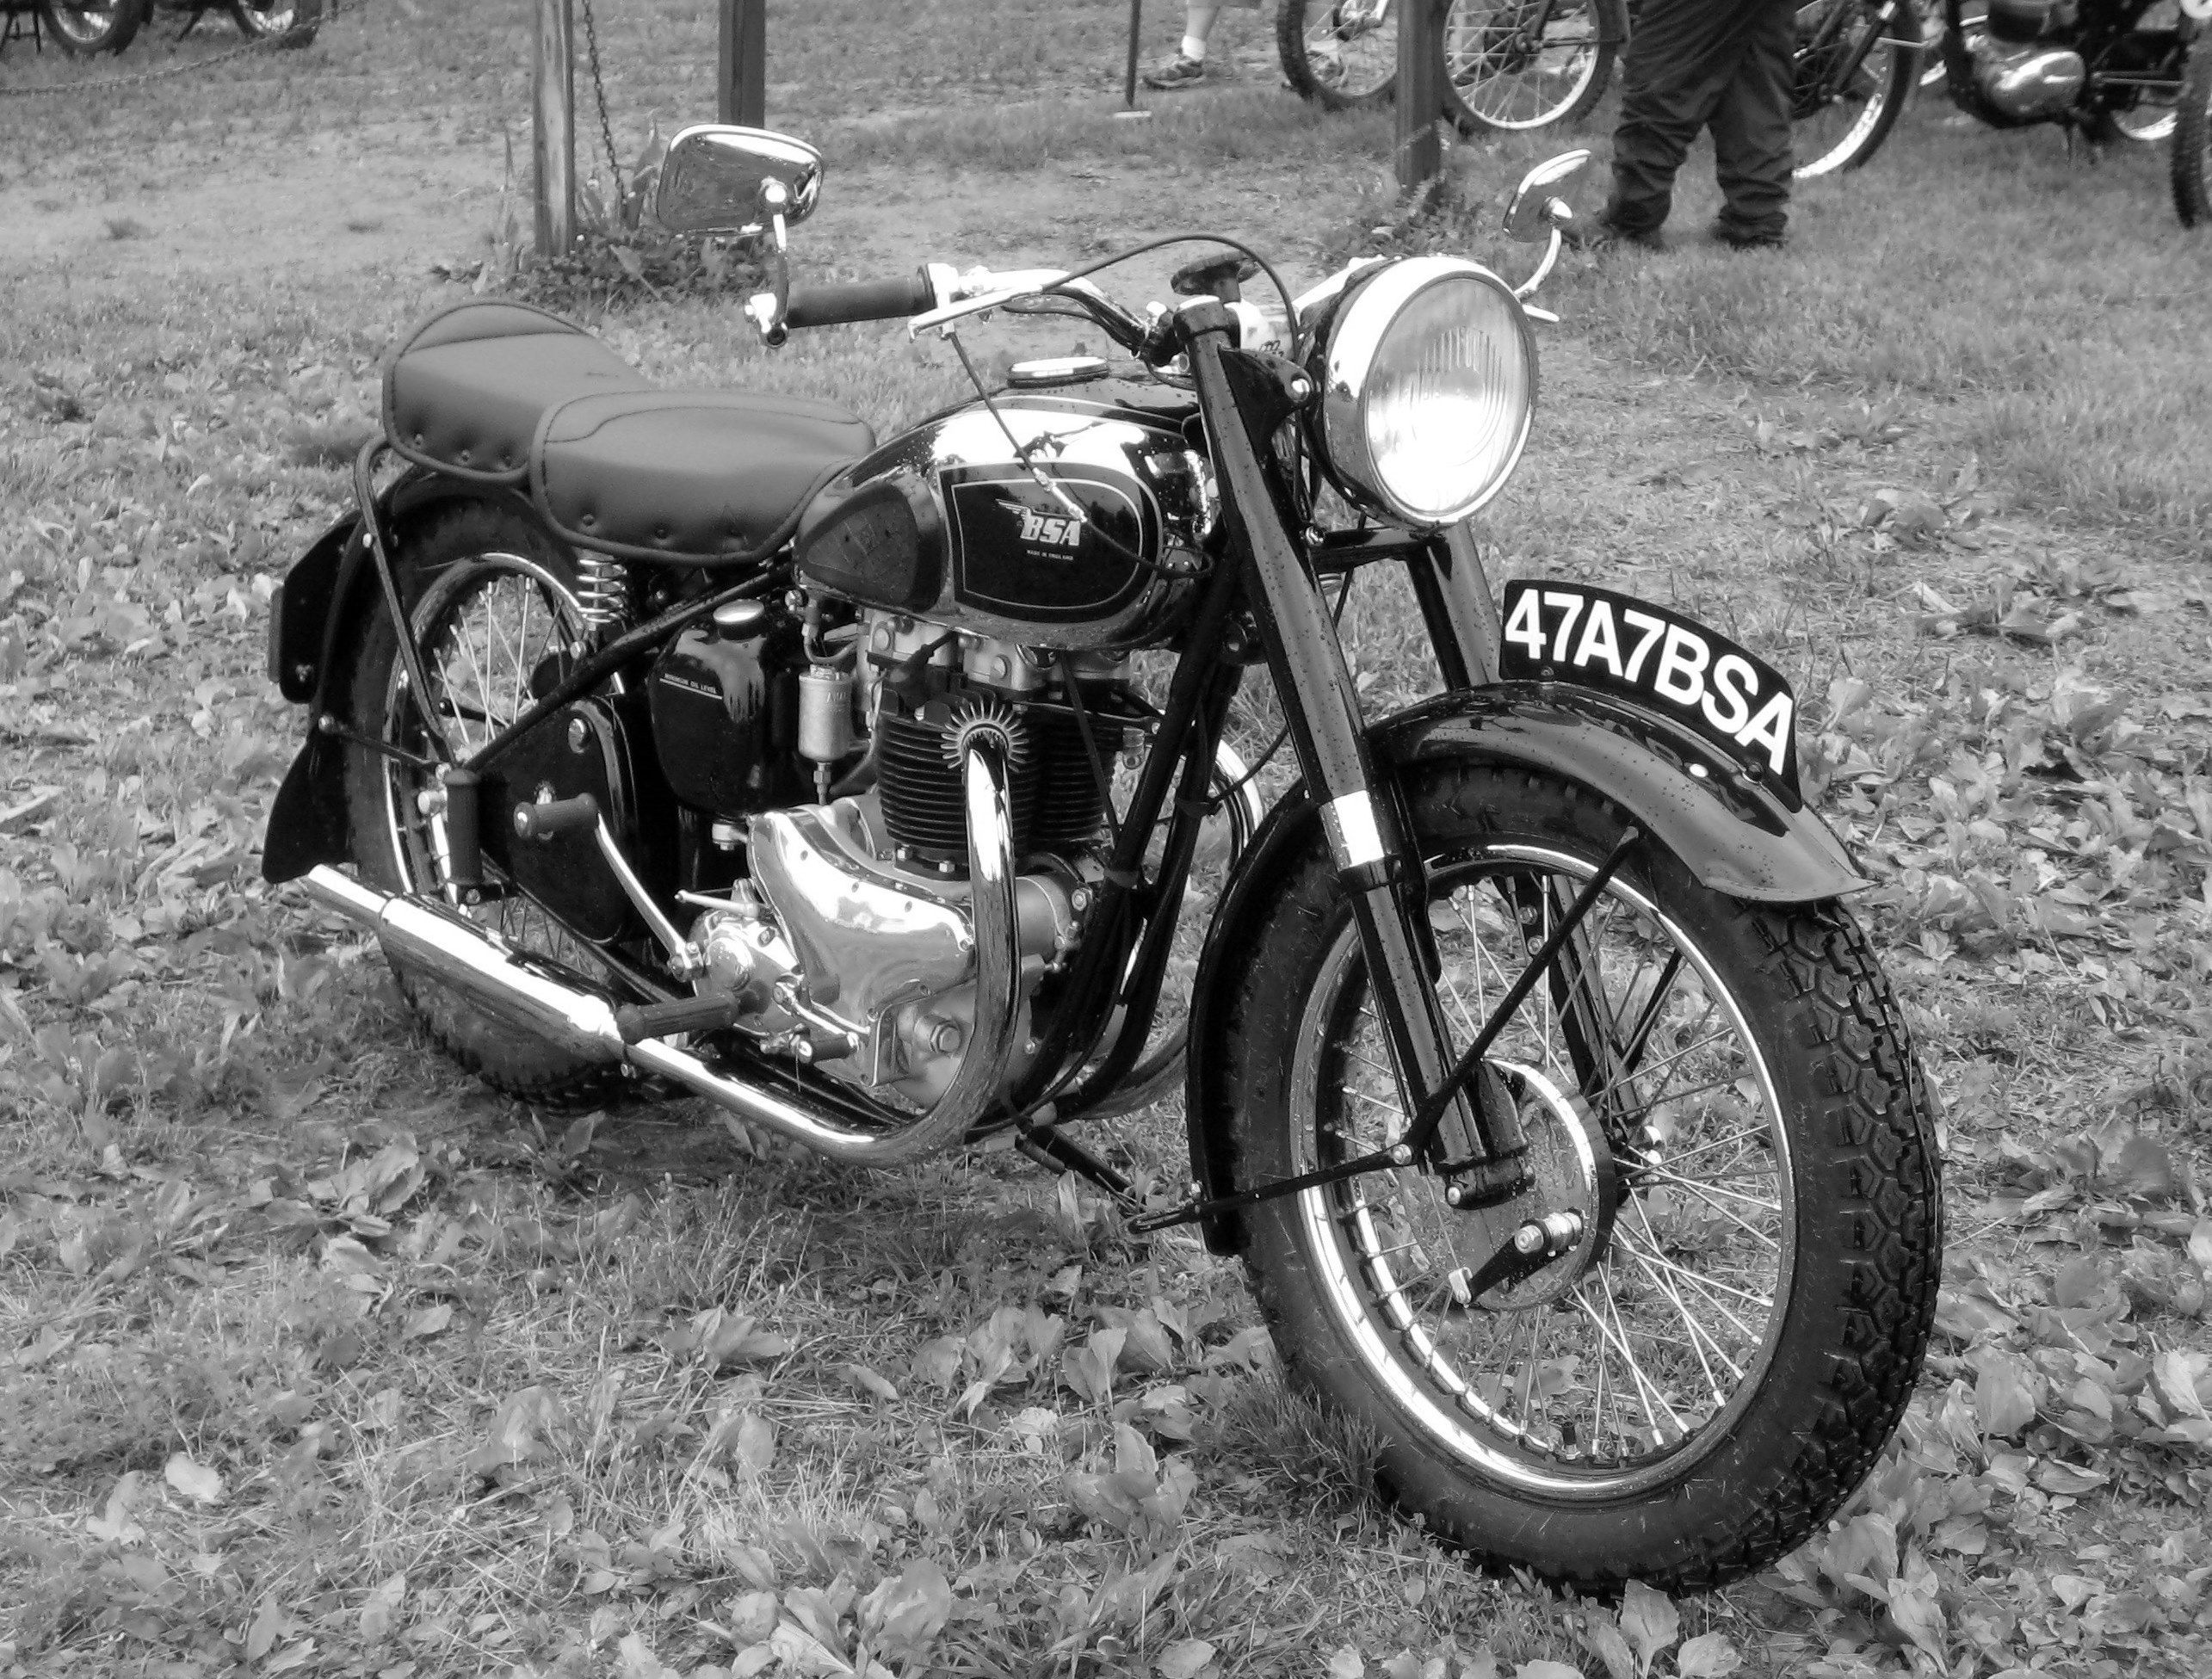 Pin By Simon Parr On Motorcycles 1 Classic Motorcycles Vintage Motorcycles Vintage Bikes